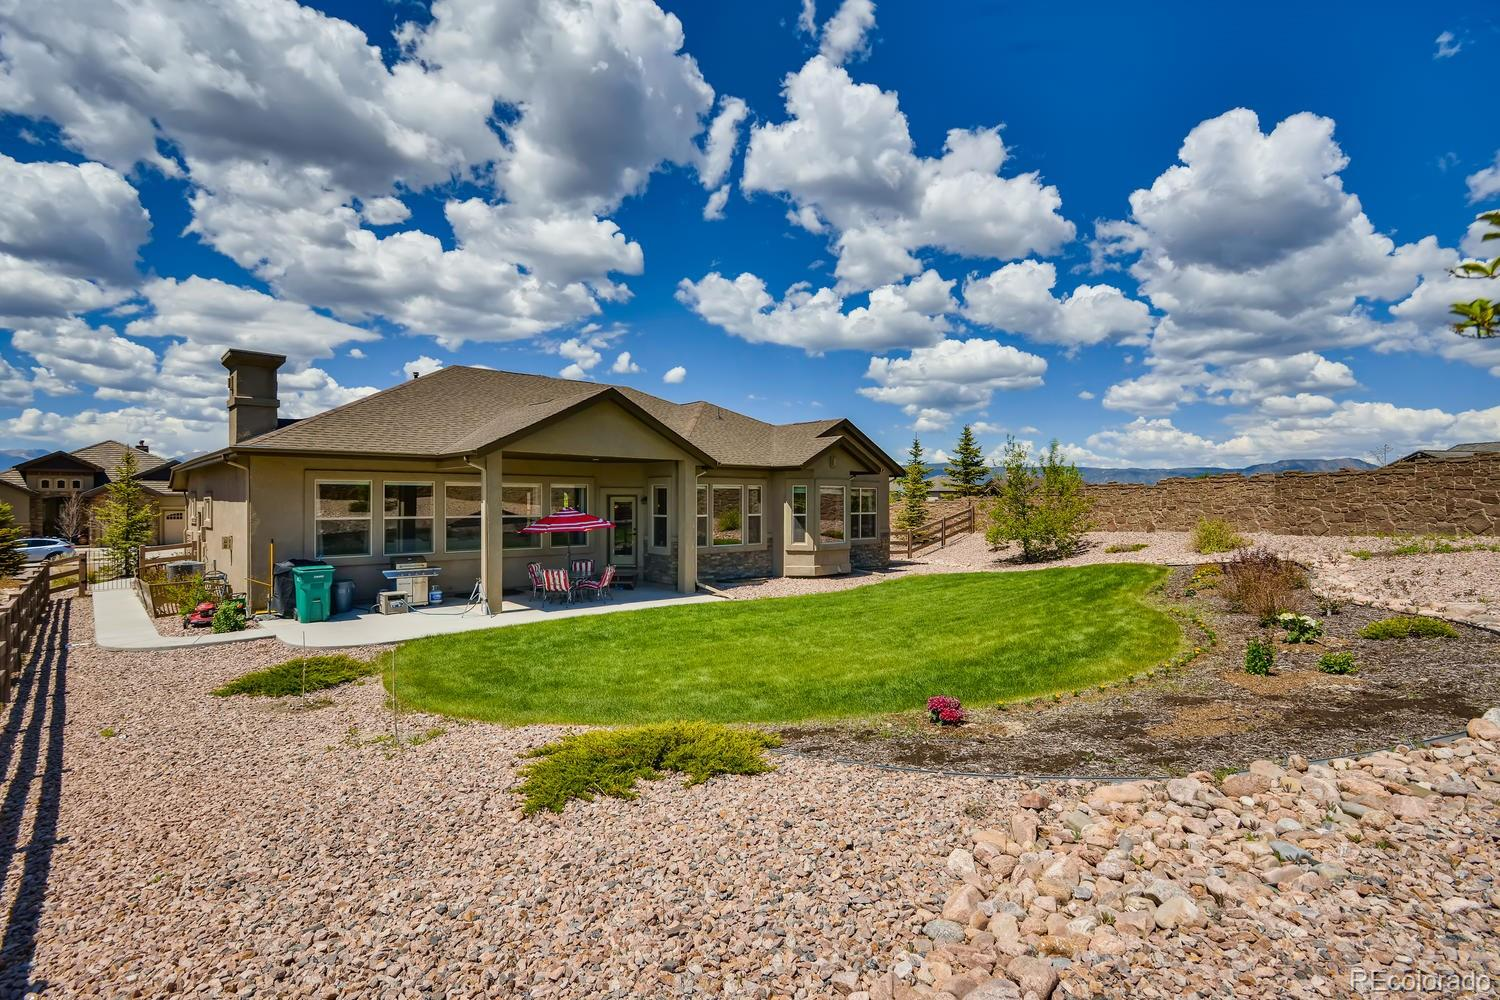 MLS# 5599006 - 26 - 1908 Turnbull Drive, Colorado Springs, CO 80921